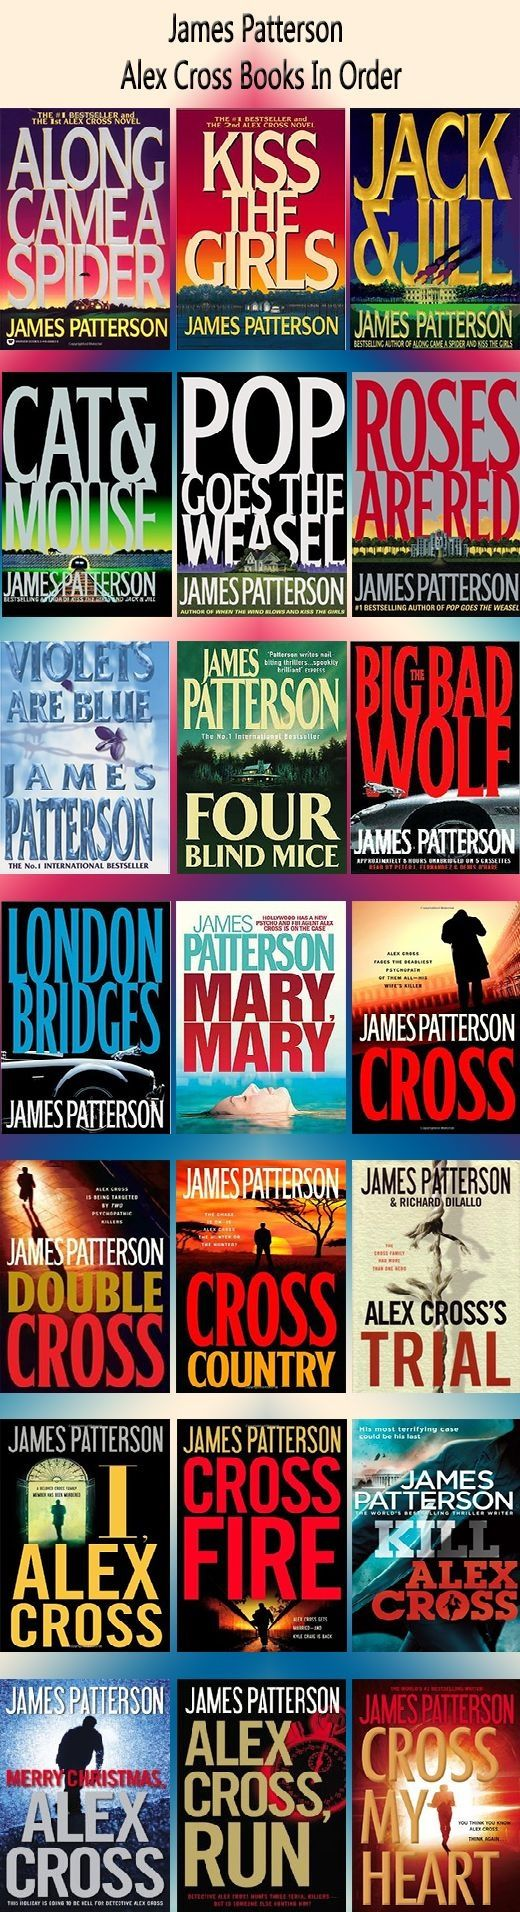 All of James Patterson